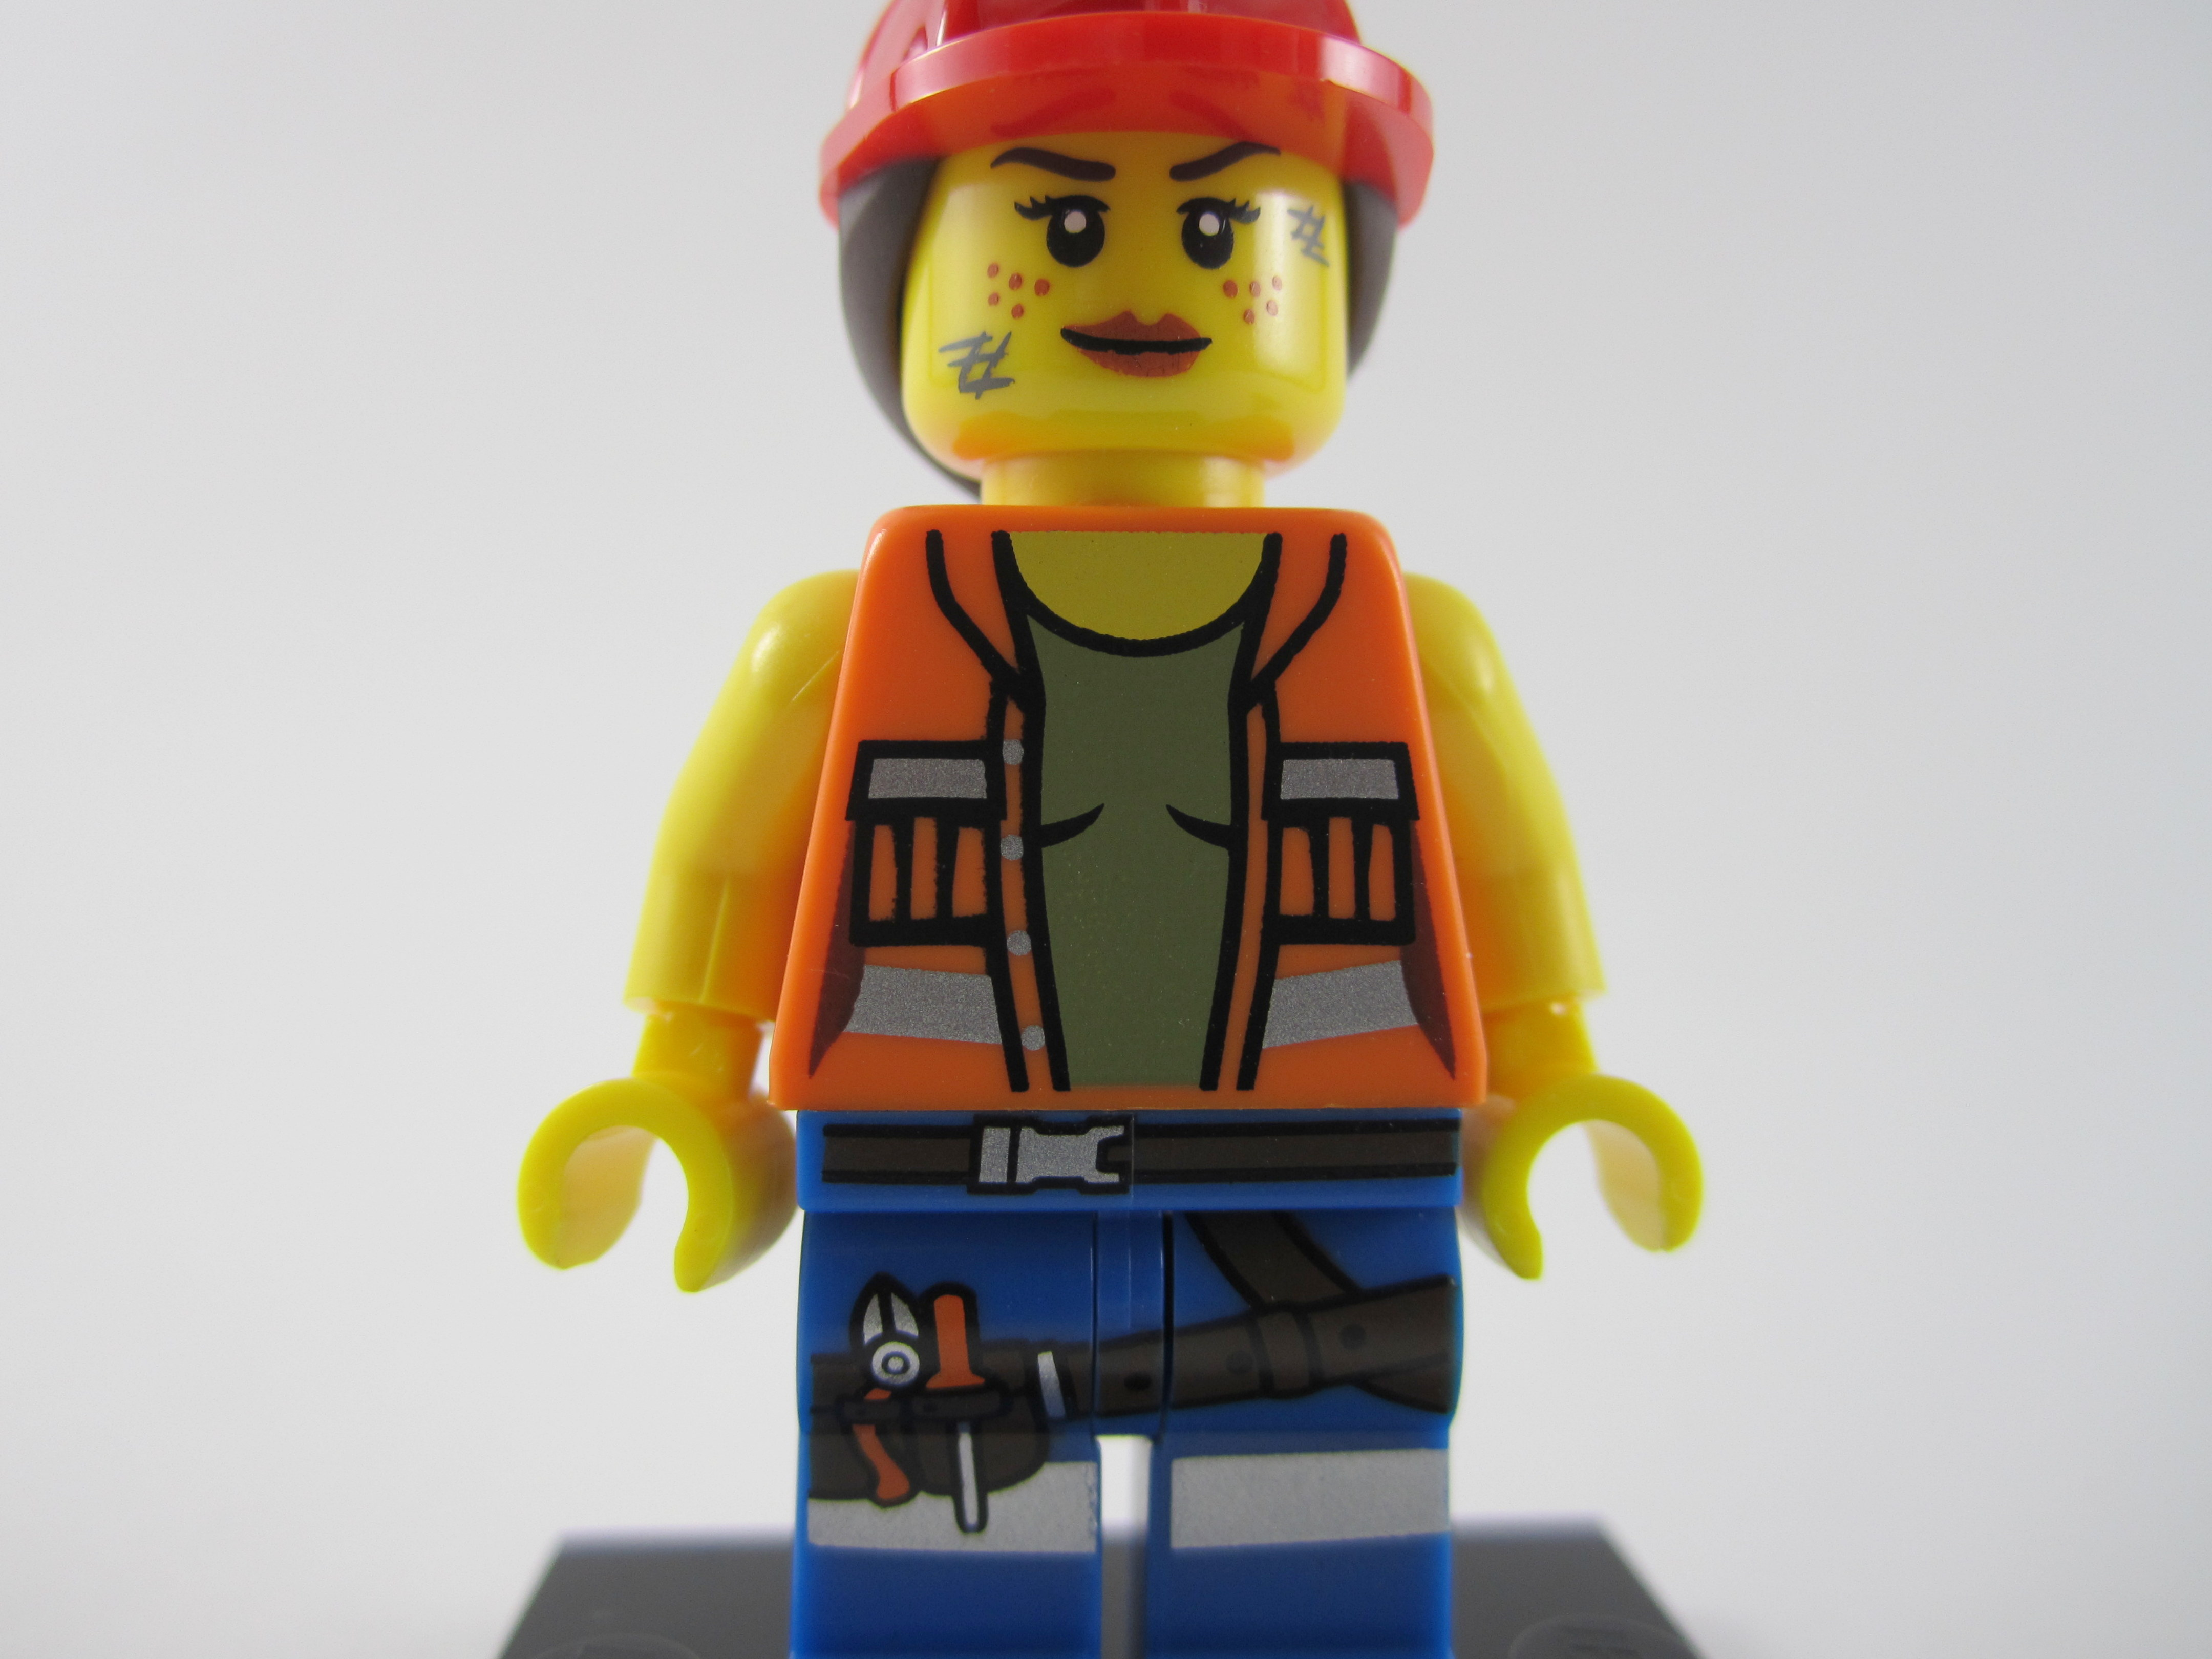 Lego Movie Gail the Construction Worker Shirt